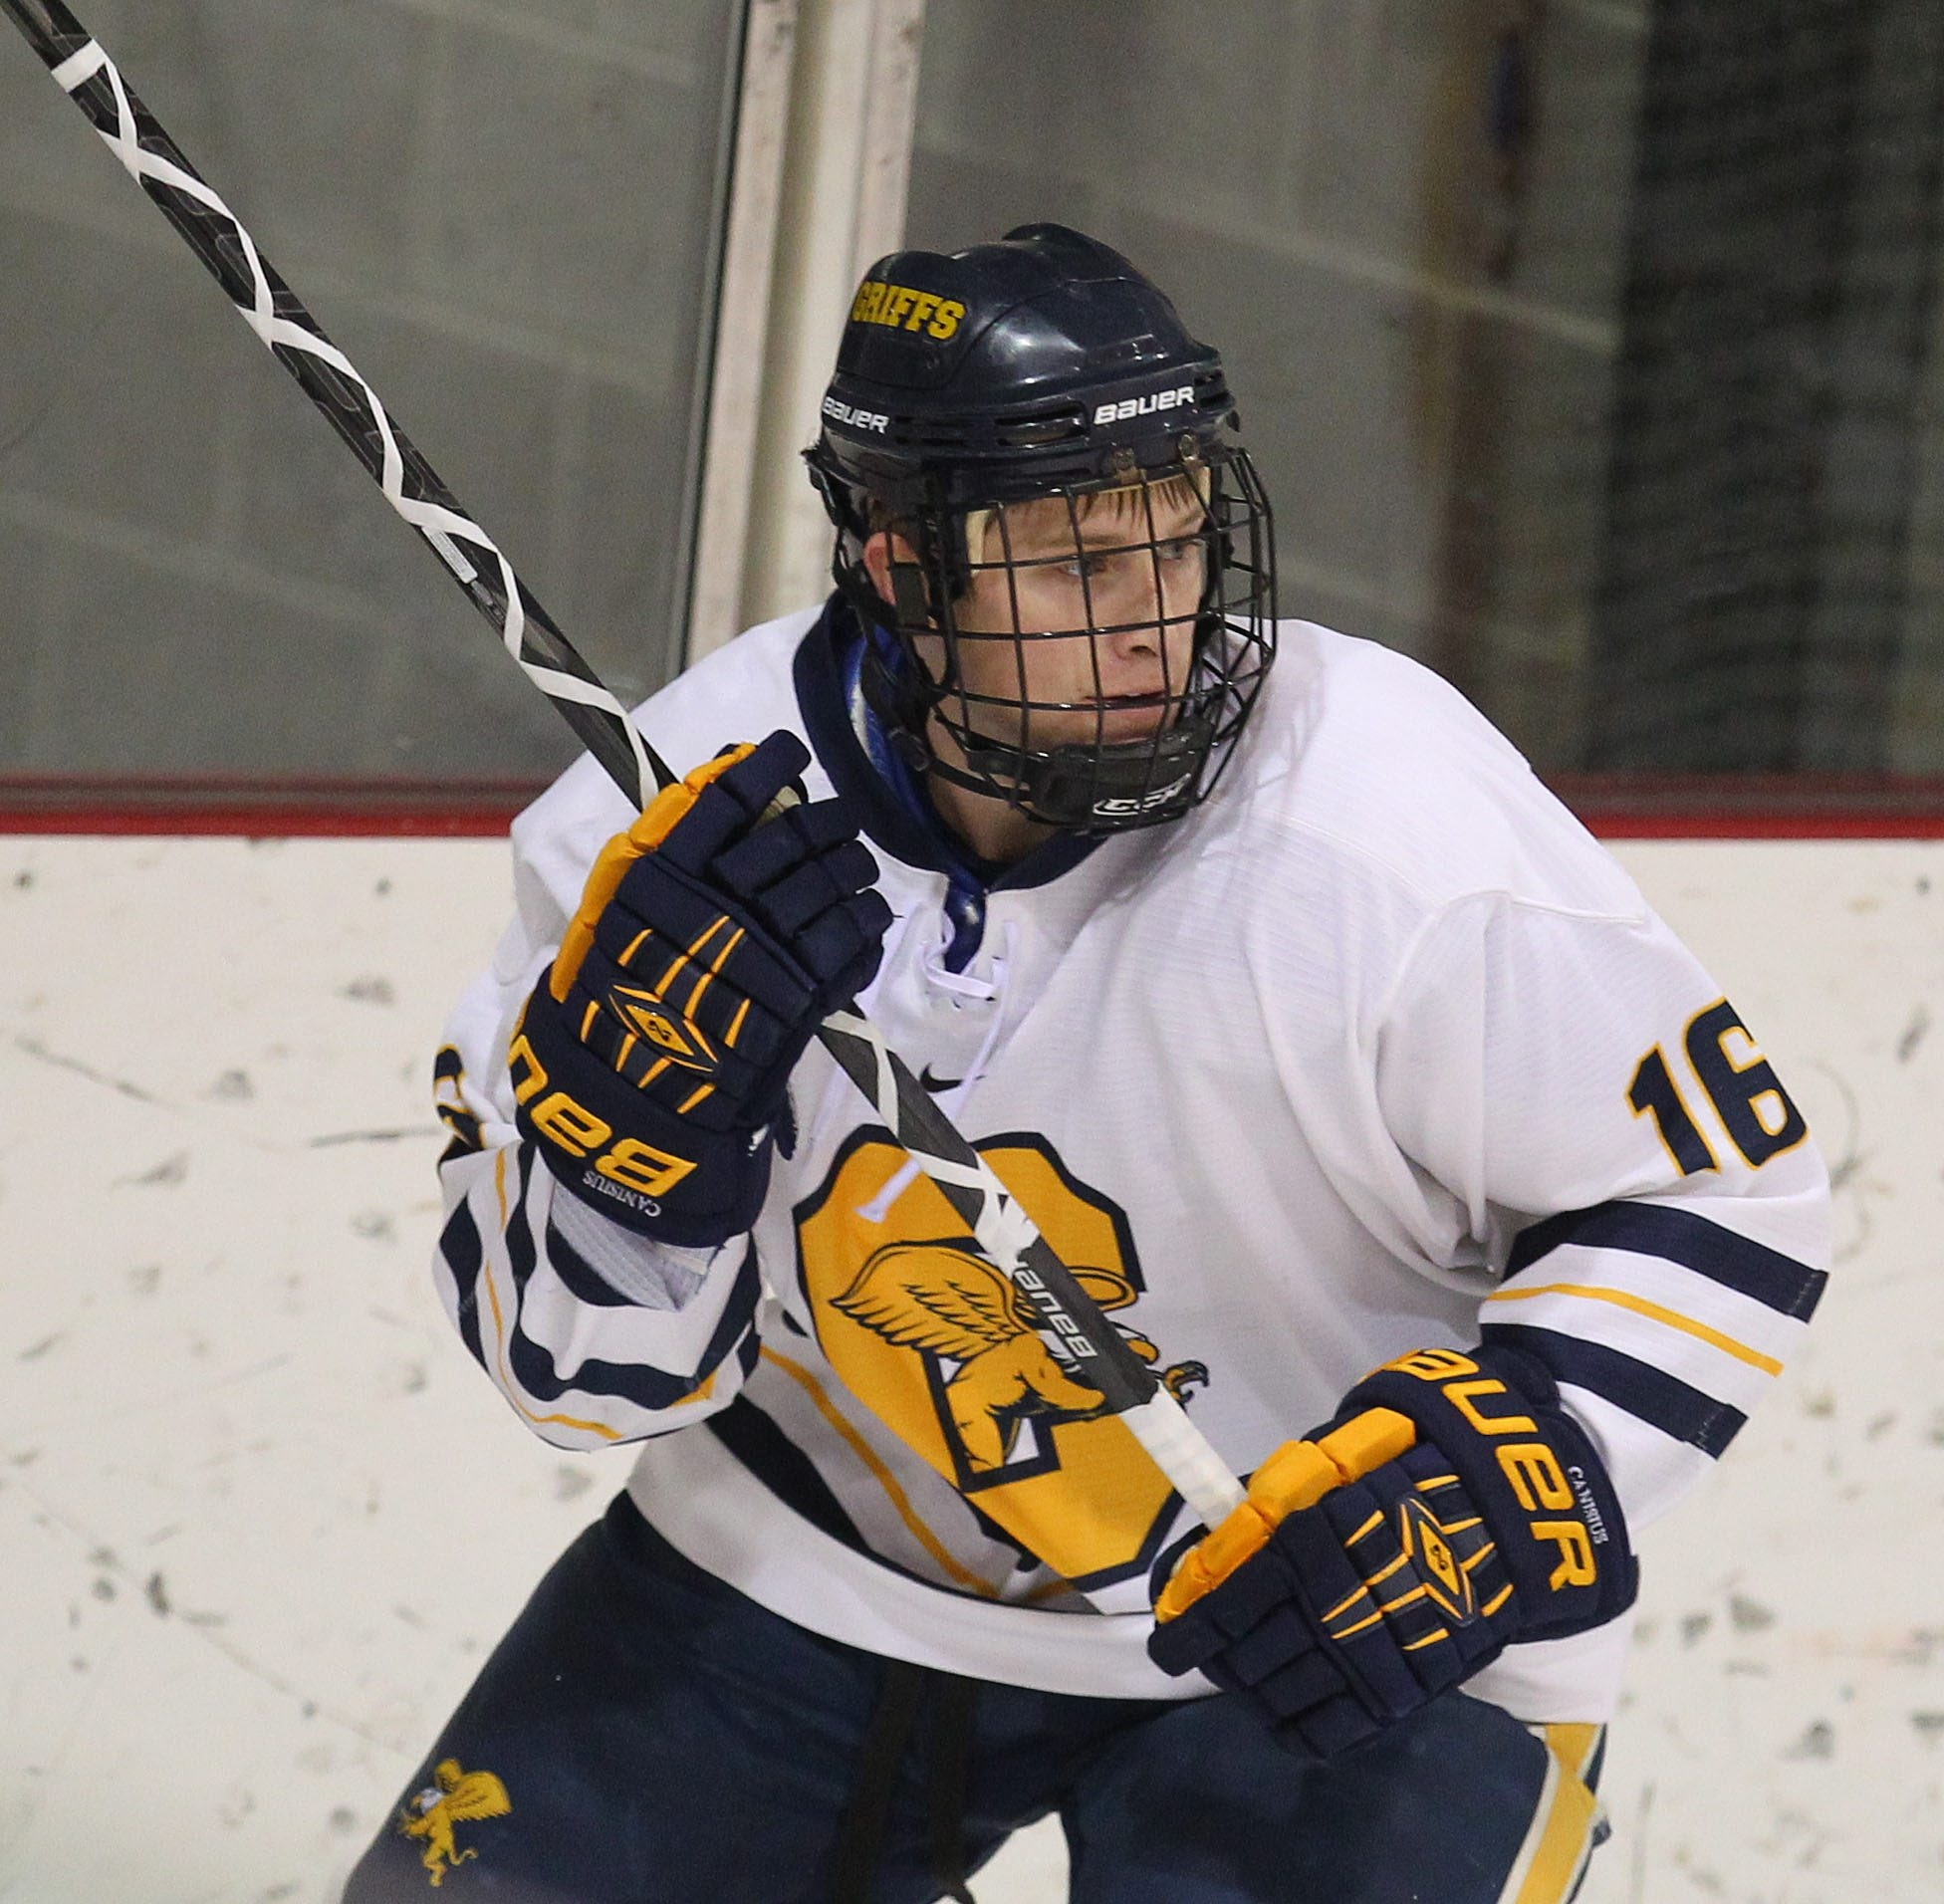 Canisius' Ben Danford skates in the first period of the game at Buffalo State Saturday, November 9, 2013.  (Mark Mulville/Buffalo News)